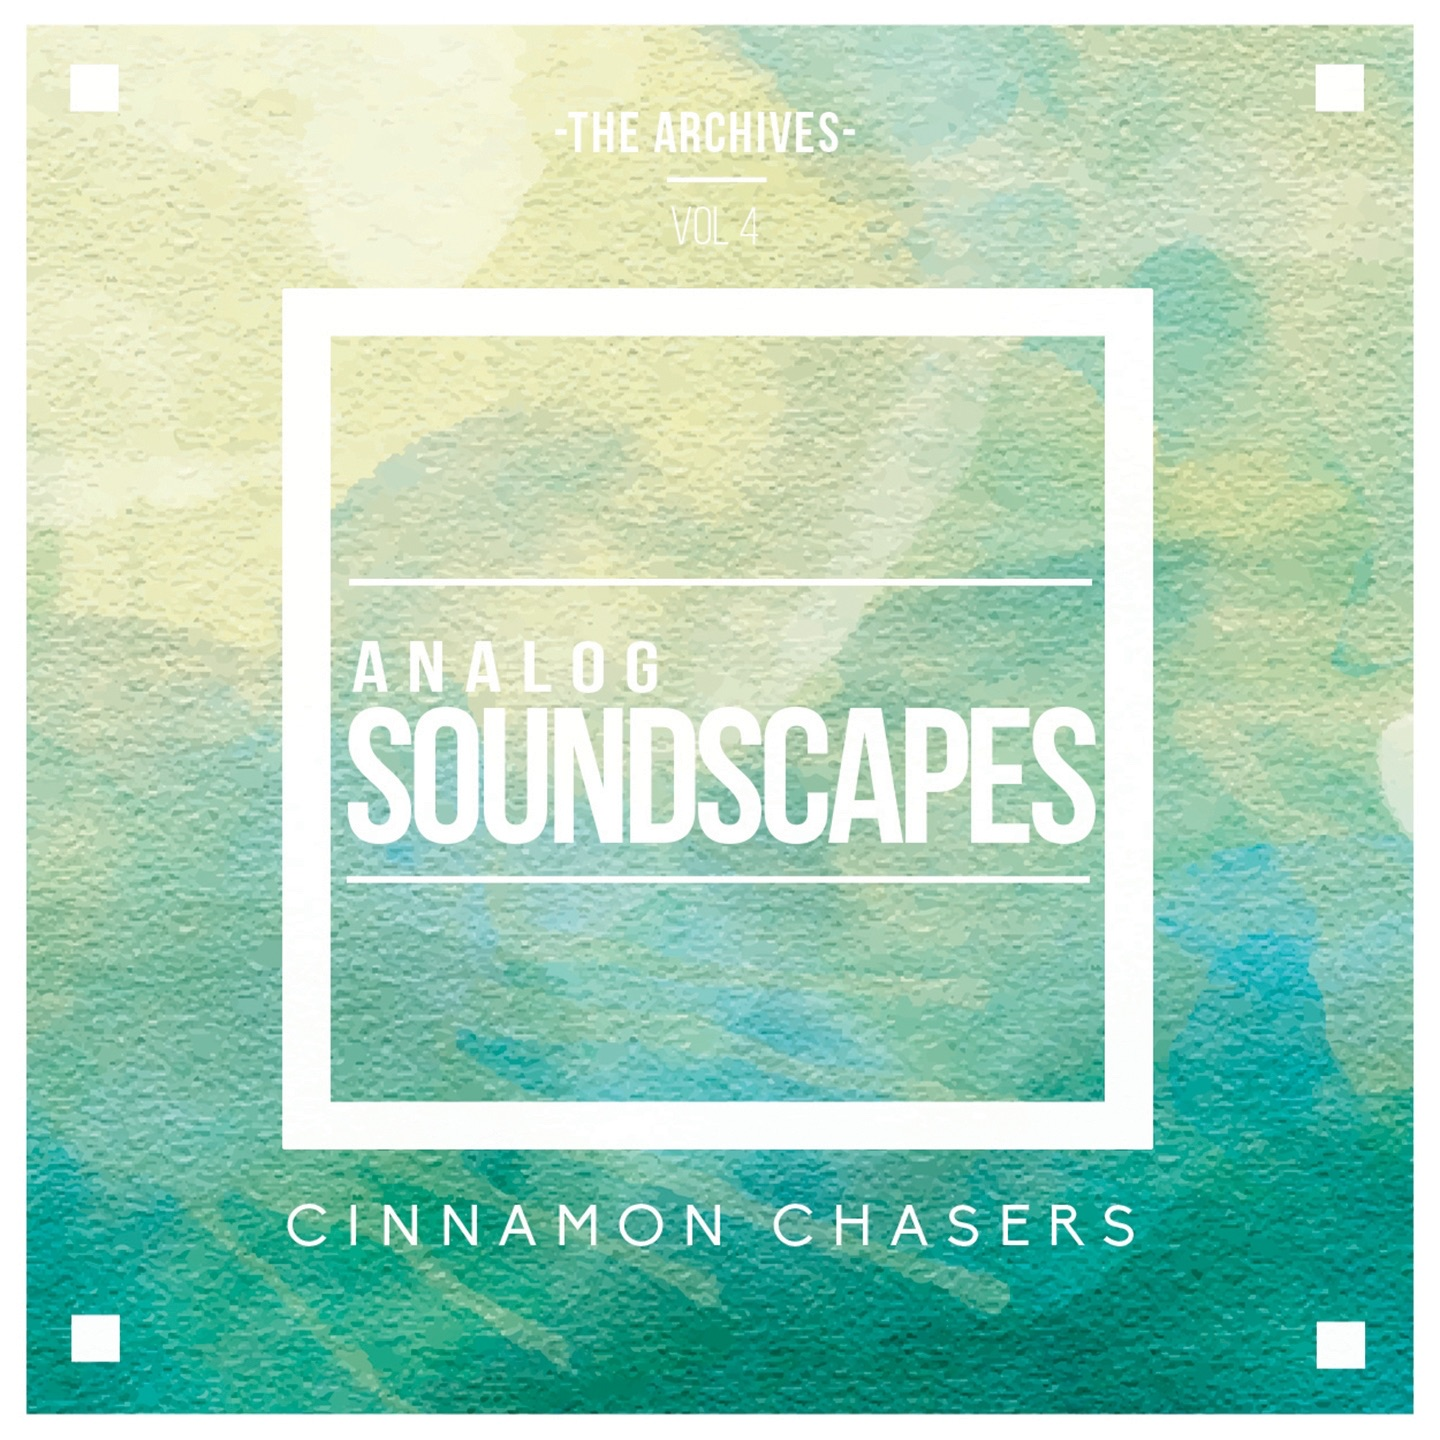 The Archives, Vol. 4: Analog Soundscapes